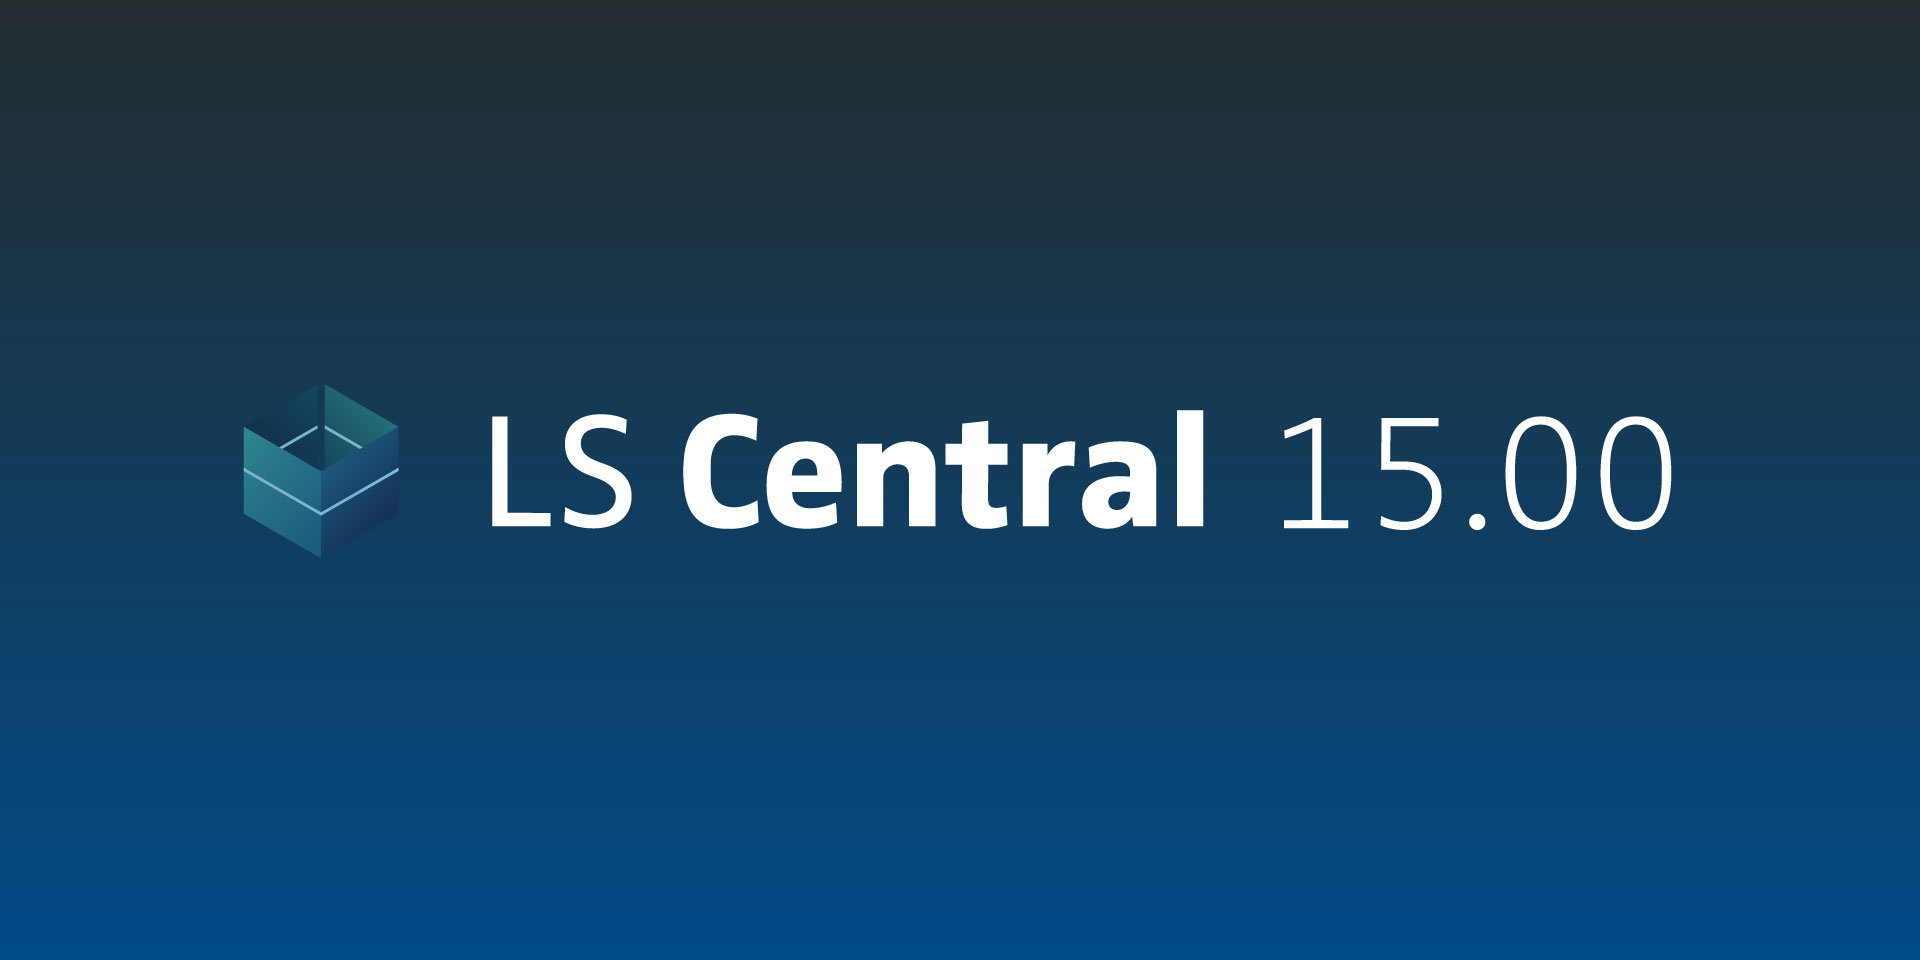 LS Central 15.00: now available only as an extension to Business Central